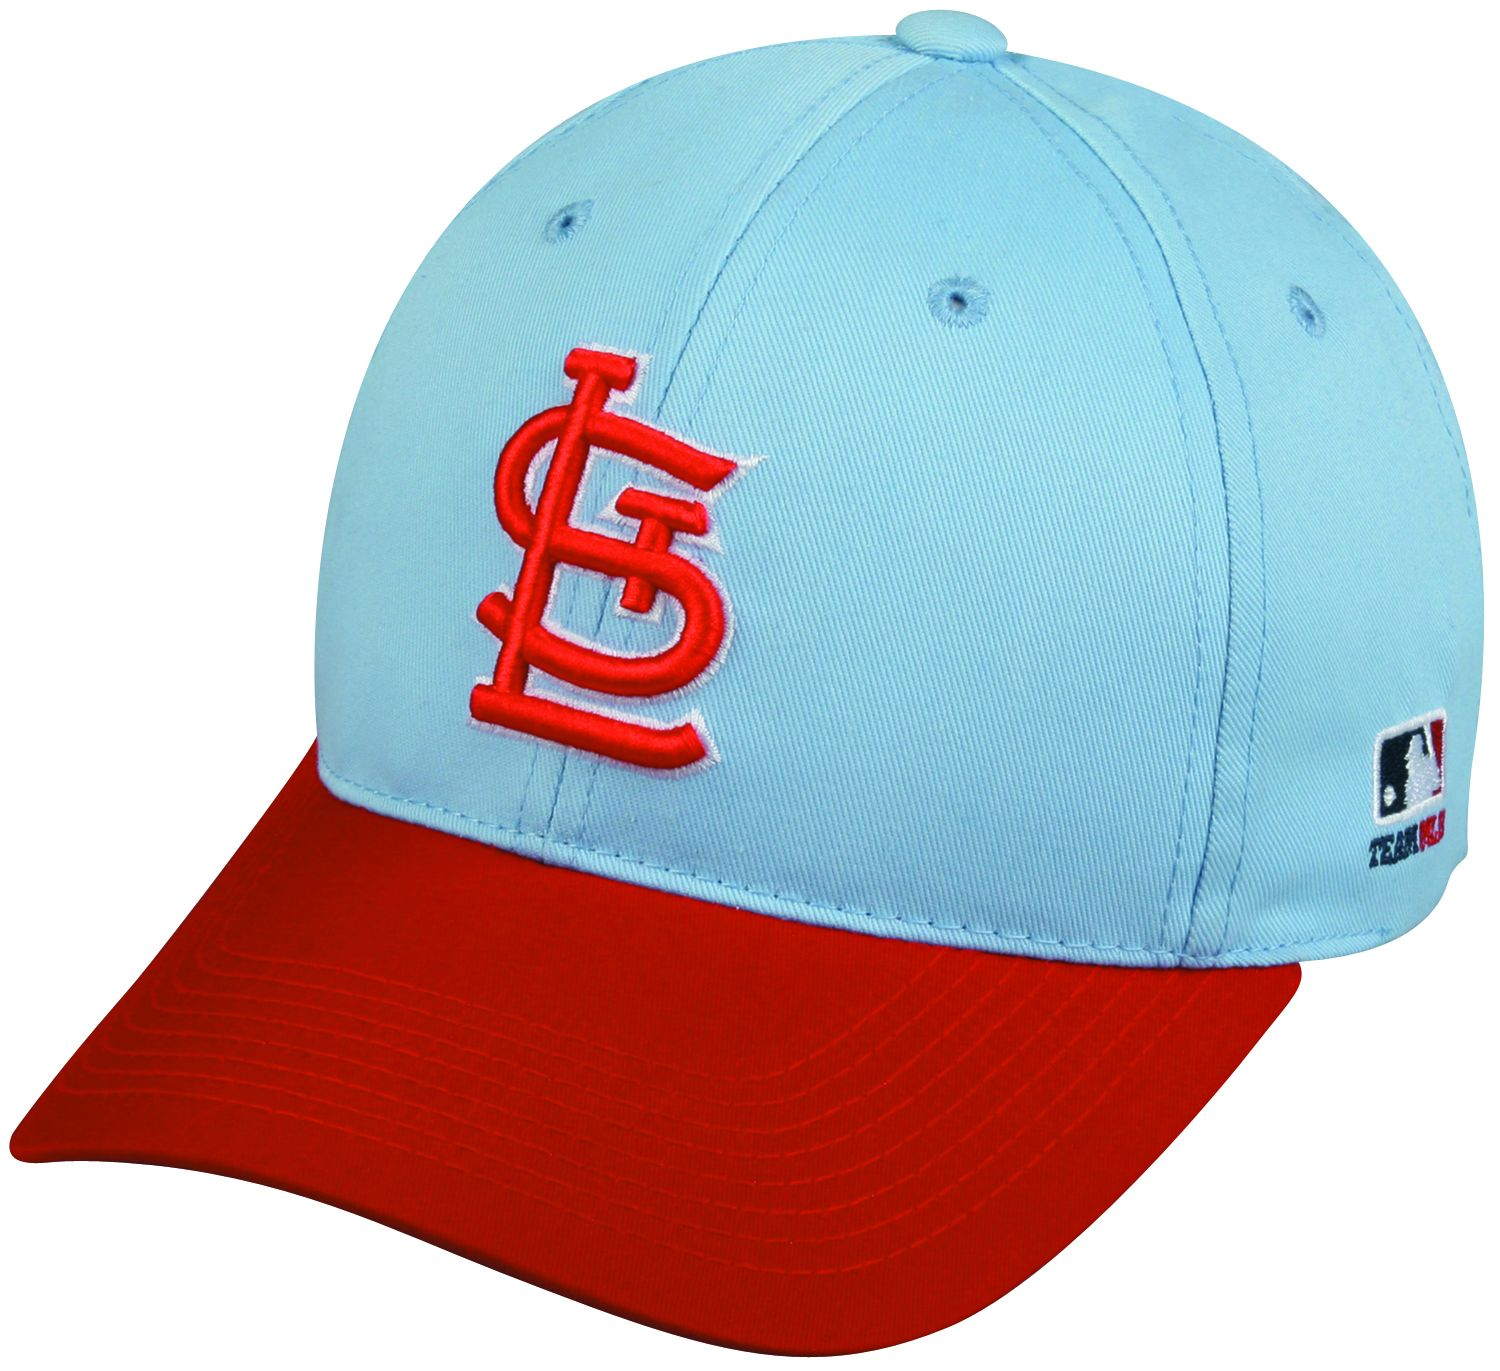 MLB Caps Cooperstown Collection by Outdoor Cap | Style Number: MLB-295